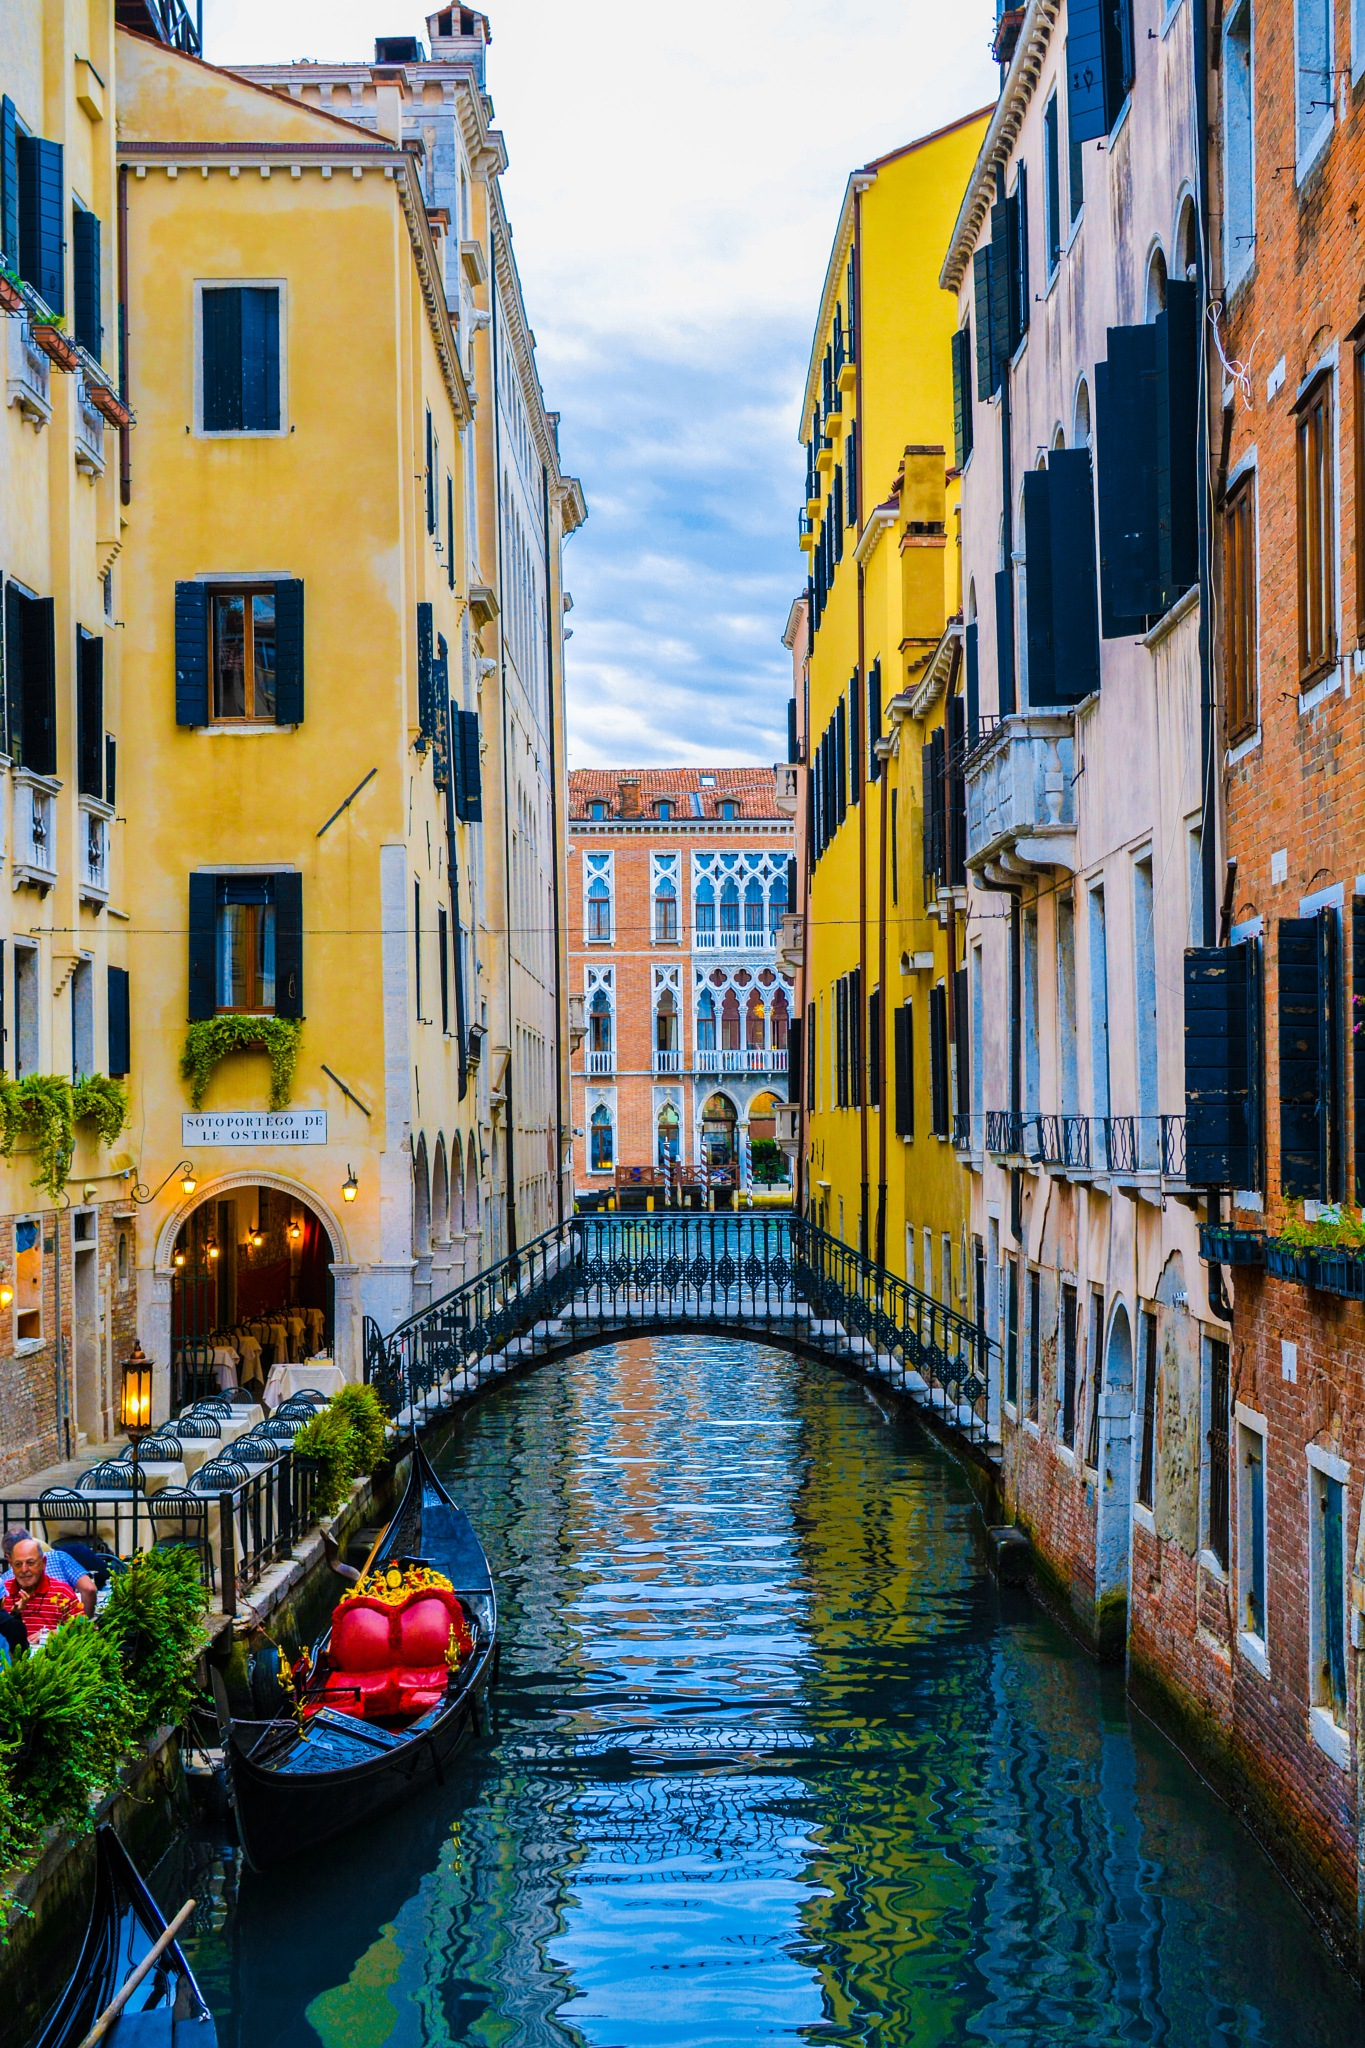 Romantic Venice Canals by simie